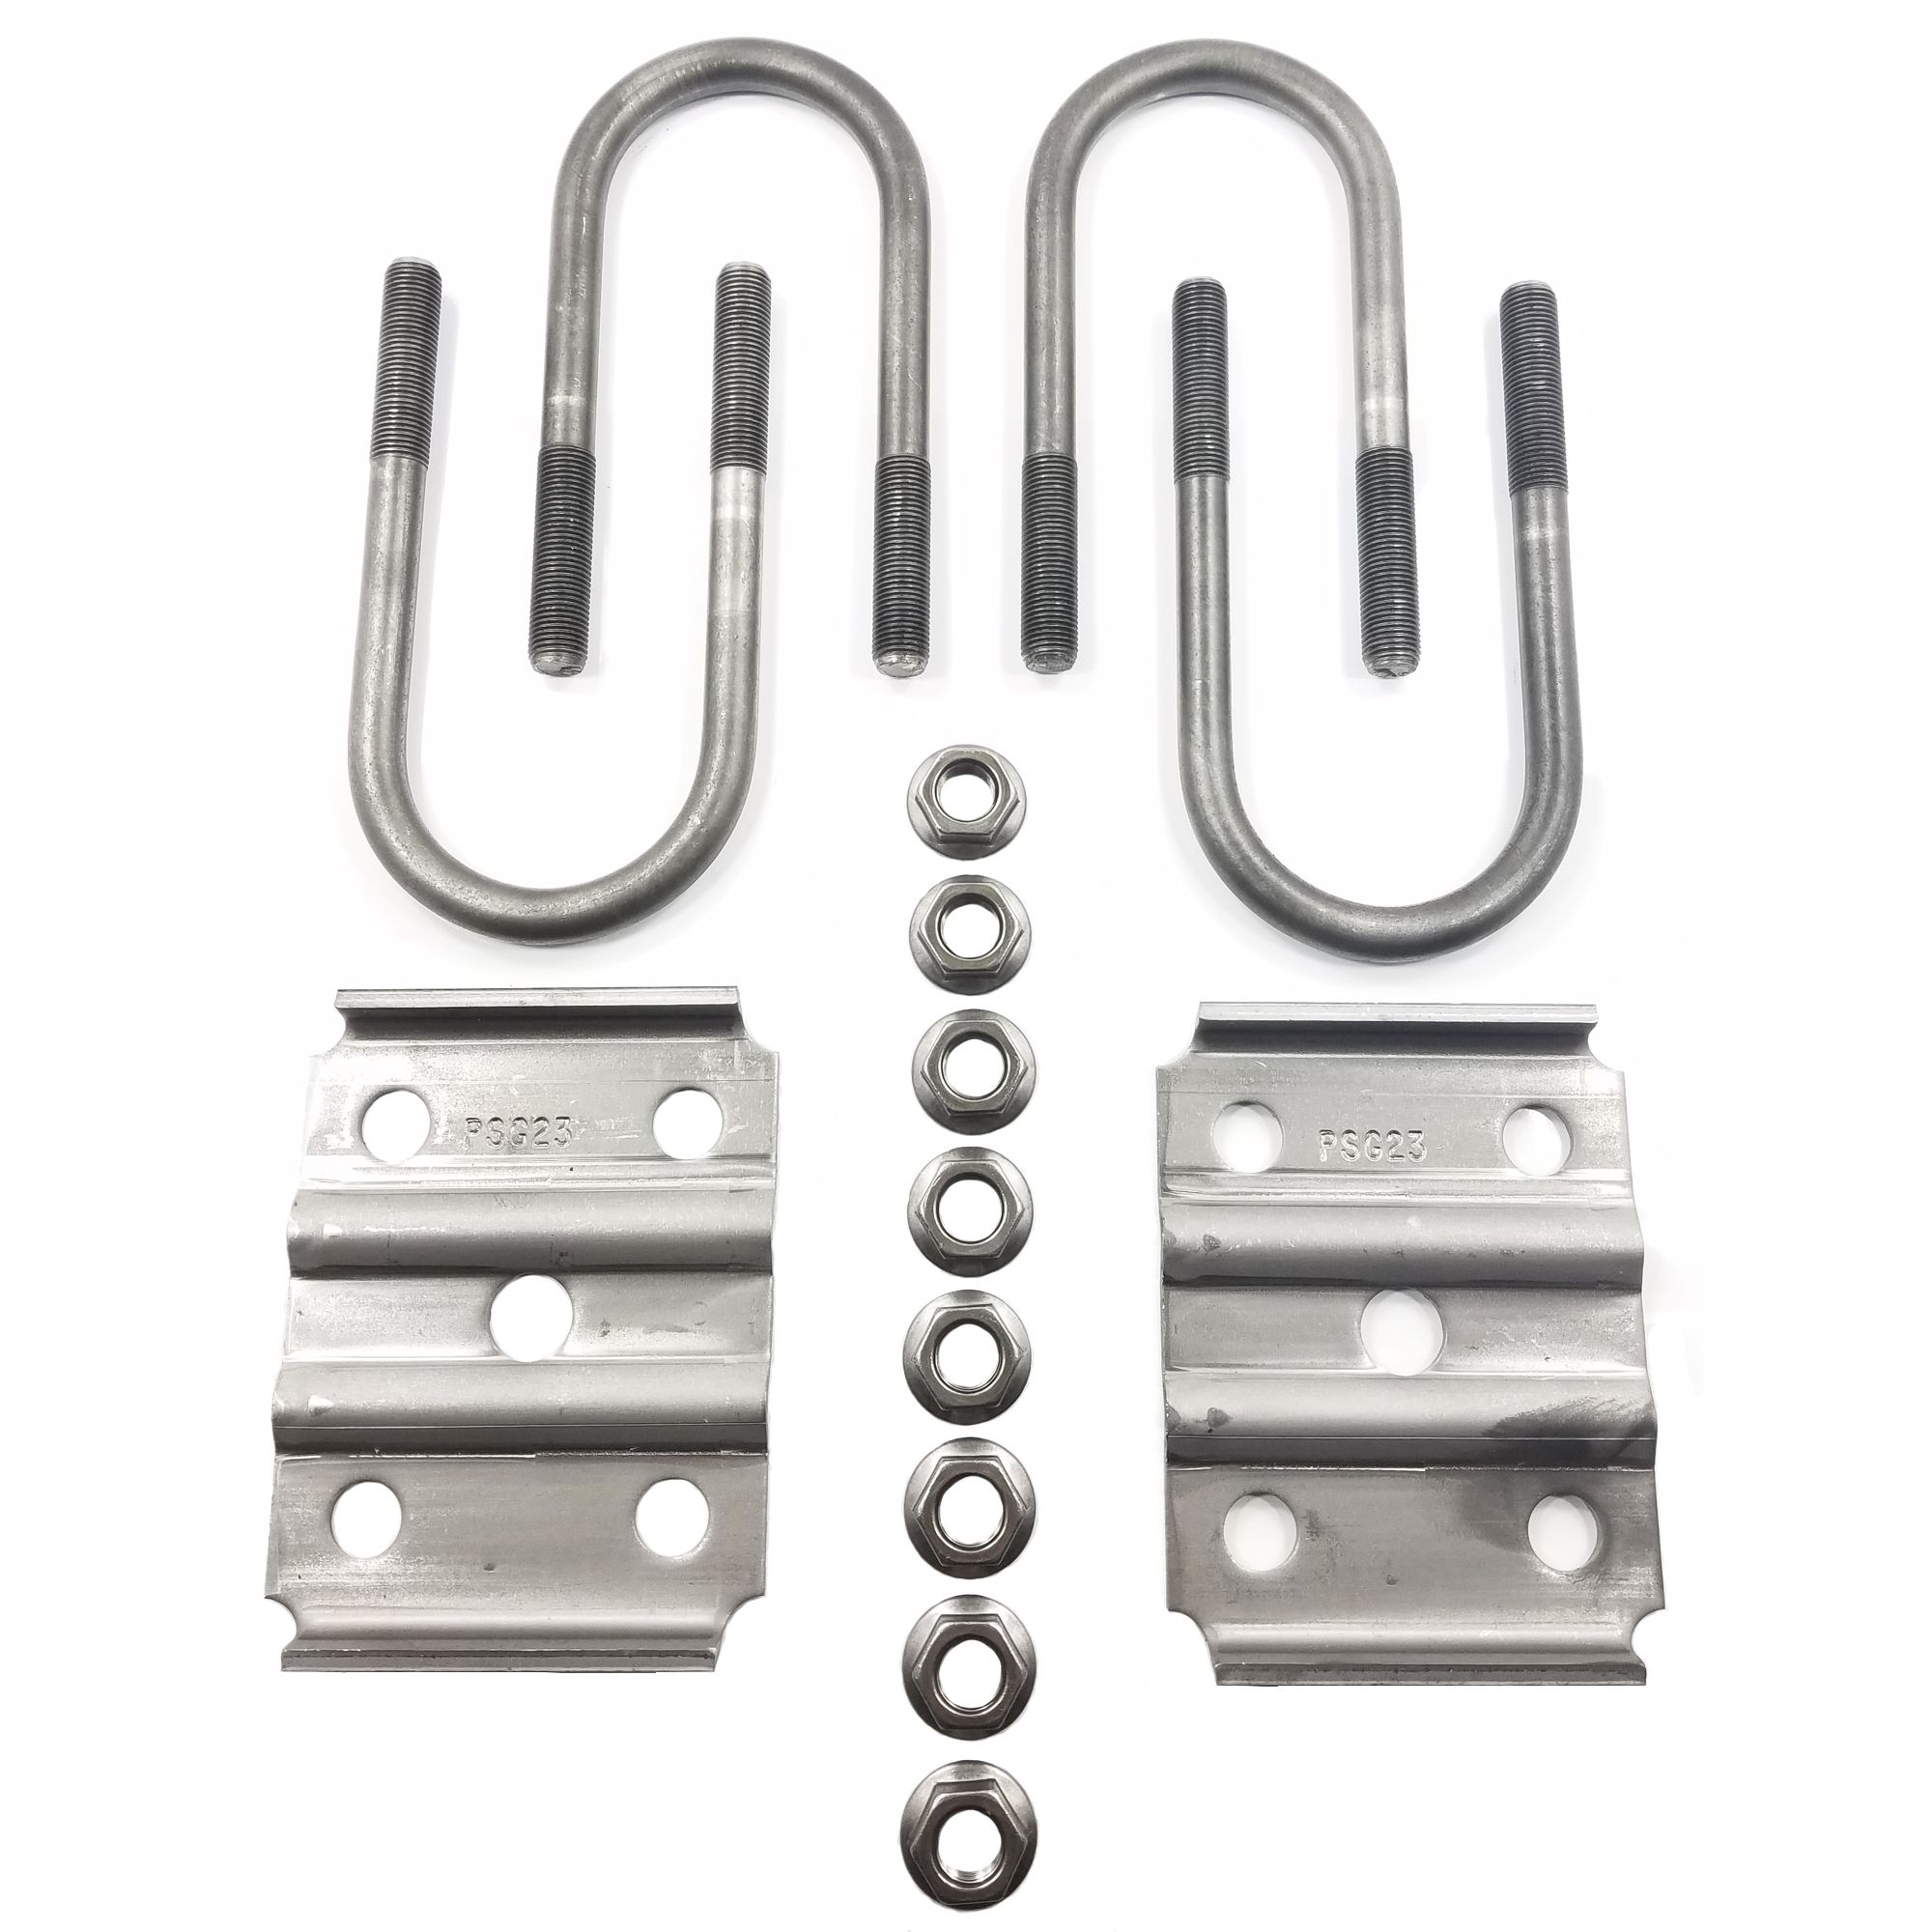 U Bolt Kit For Mounting A 2 3 8 Round Trailer Axle 3 500 Lbs Johnson Trailer Parts Trailer Axles Trailer Accessories Bolt